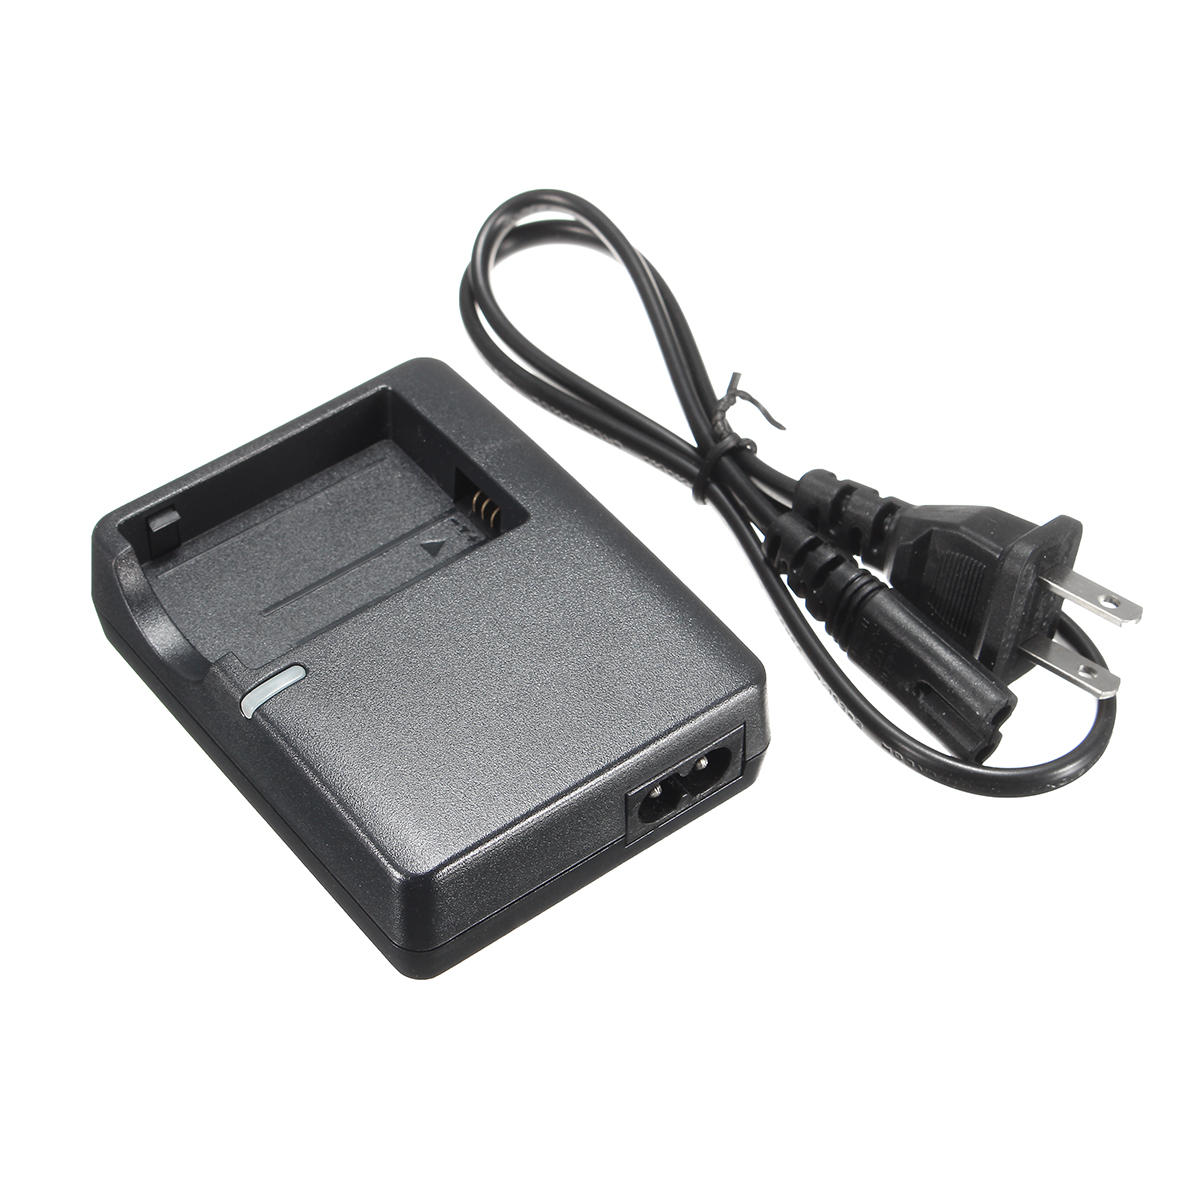 Accessories & Parts Consumer Electronics Power Charger Adapter For Canon Eos 450d 500d 1000d Rebel Xsi T1i Xs